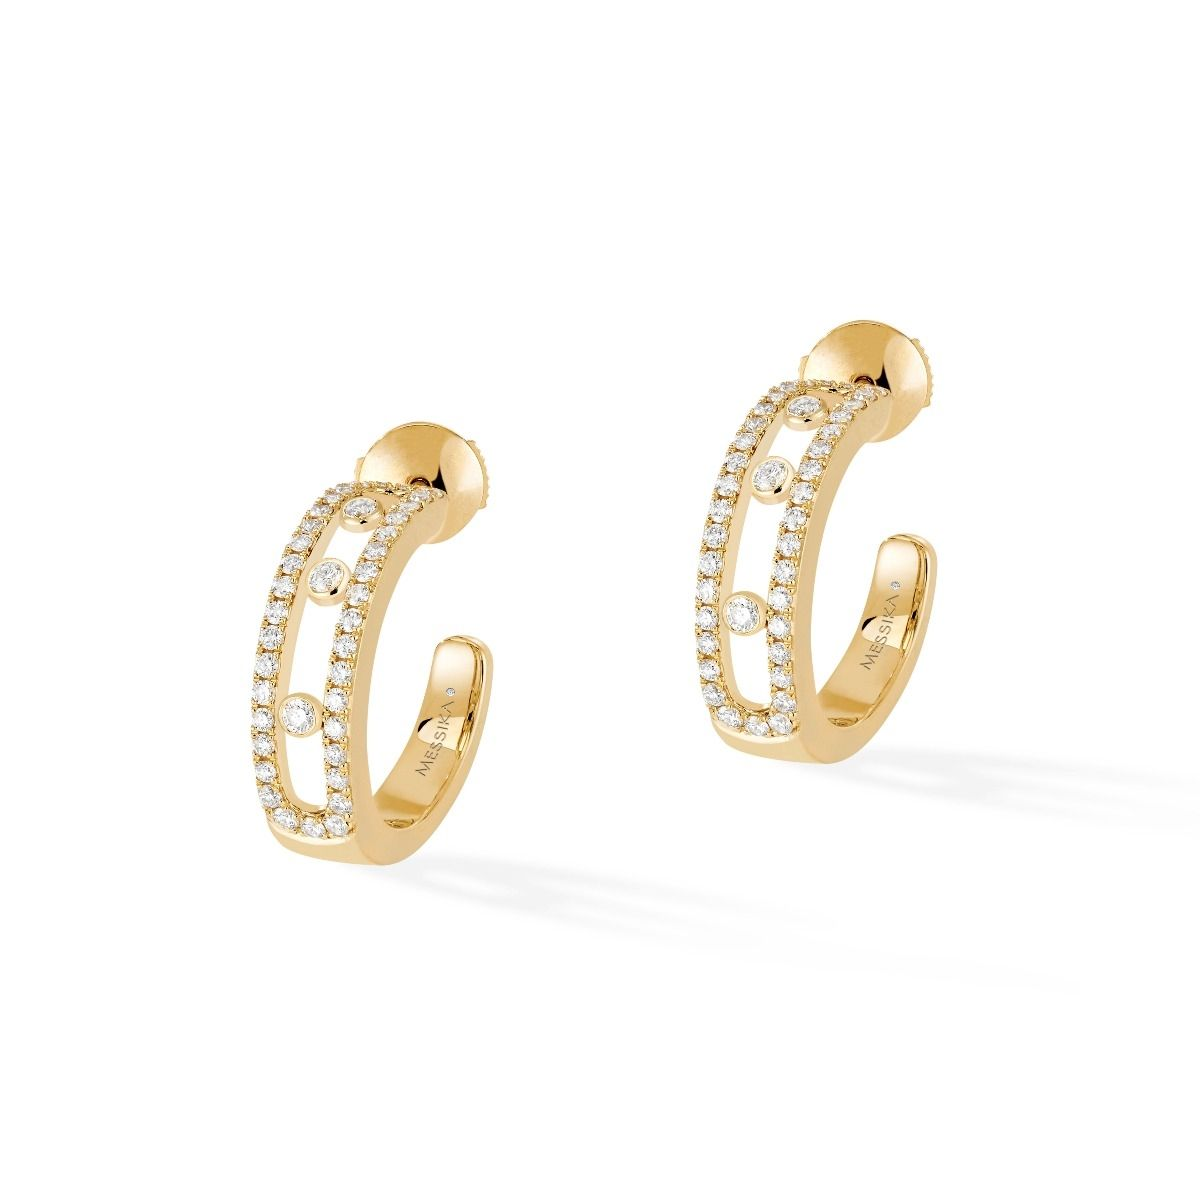 Move pavé hoop diamond earrings in carat pink gold like